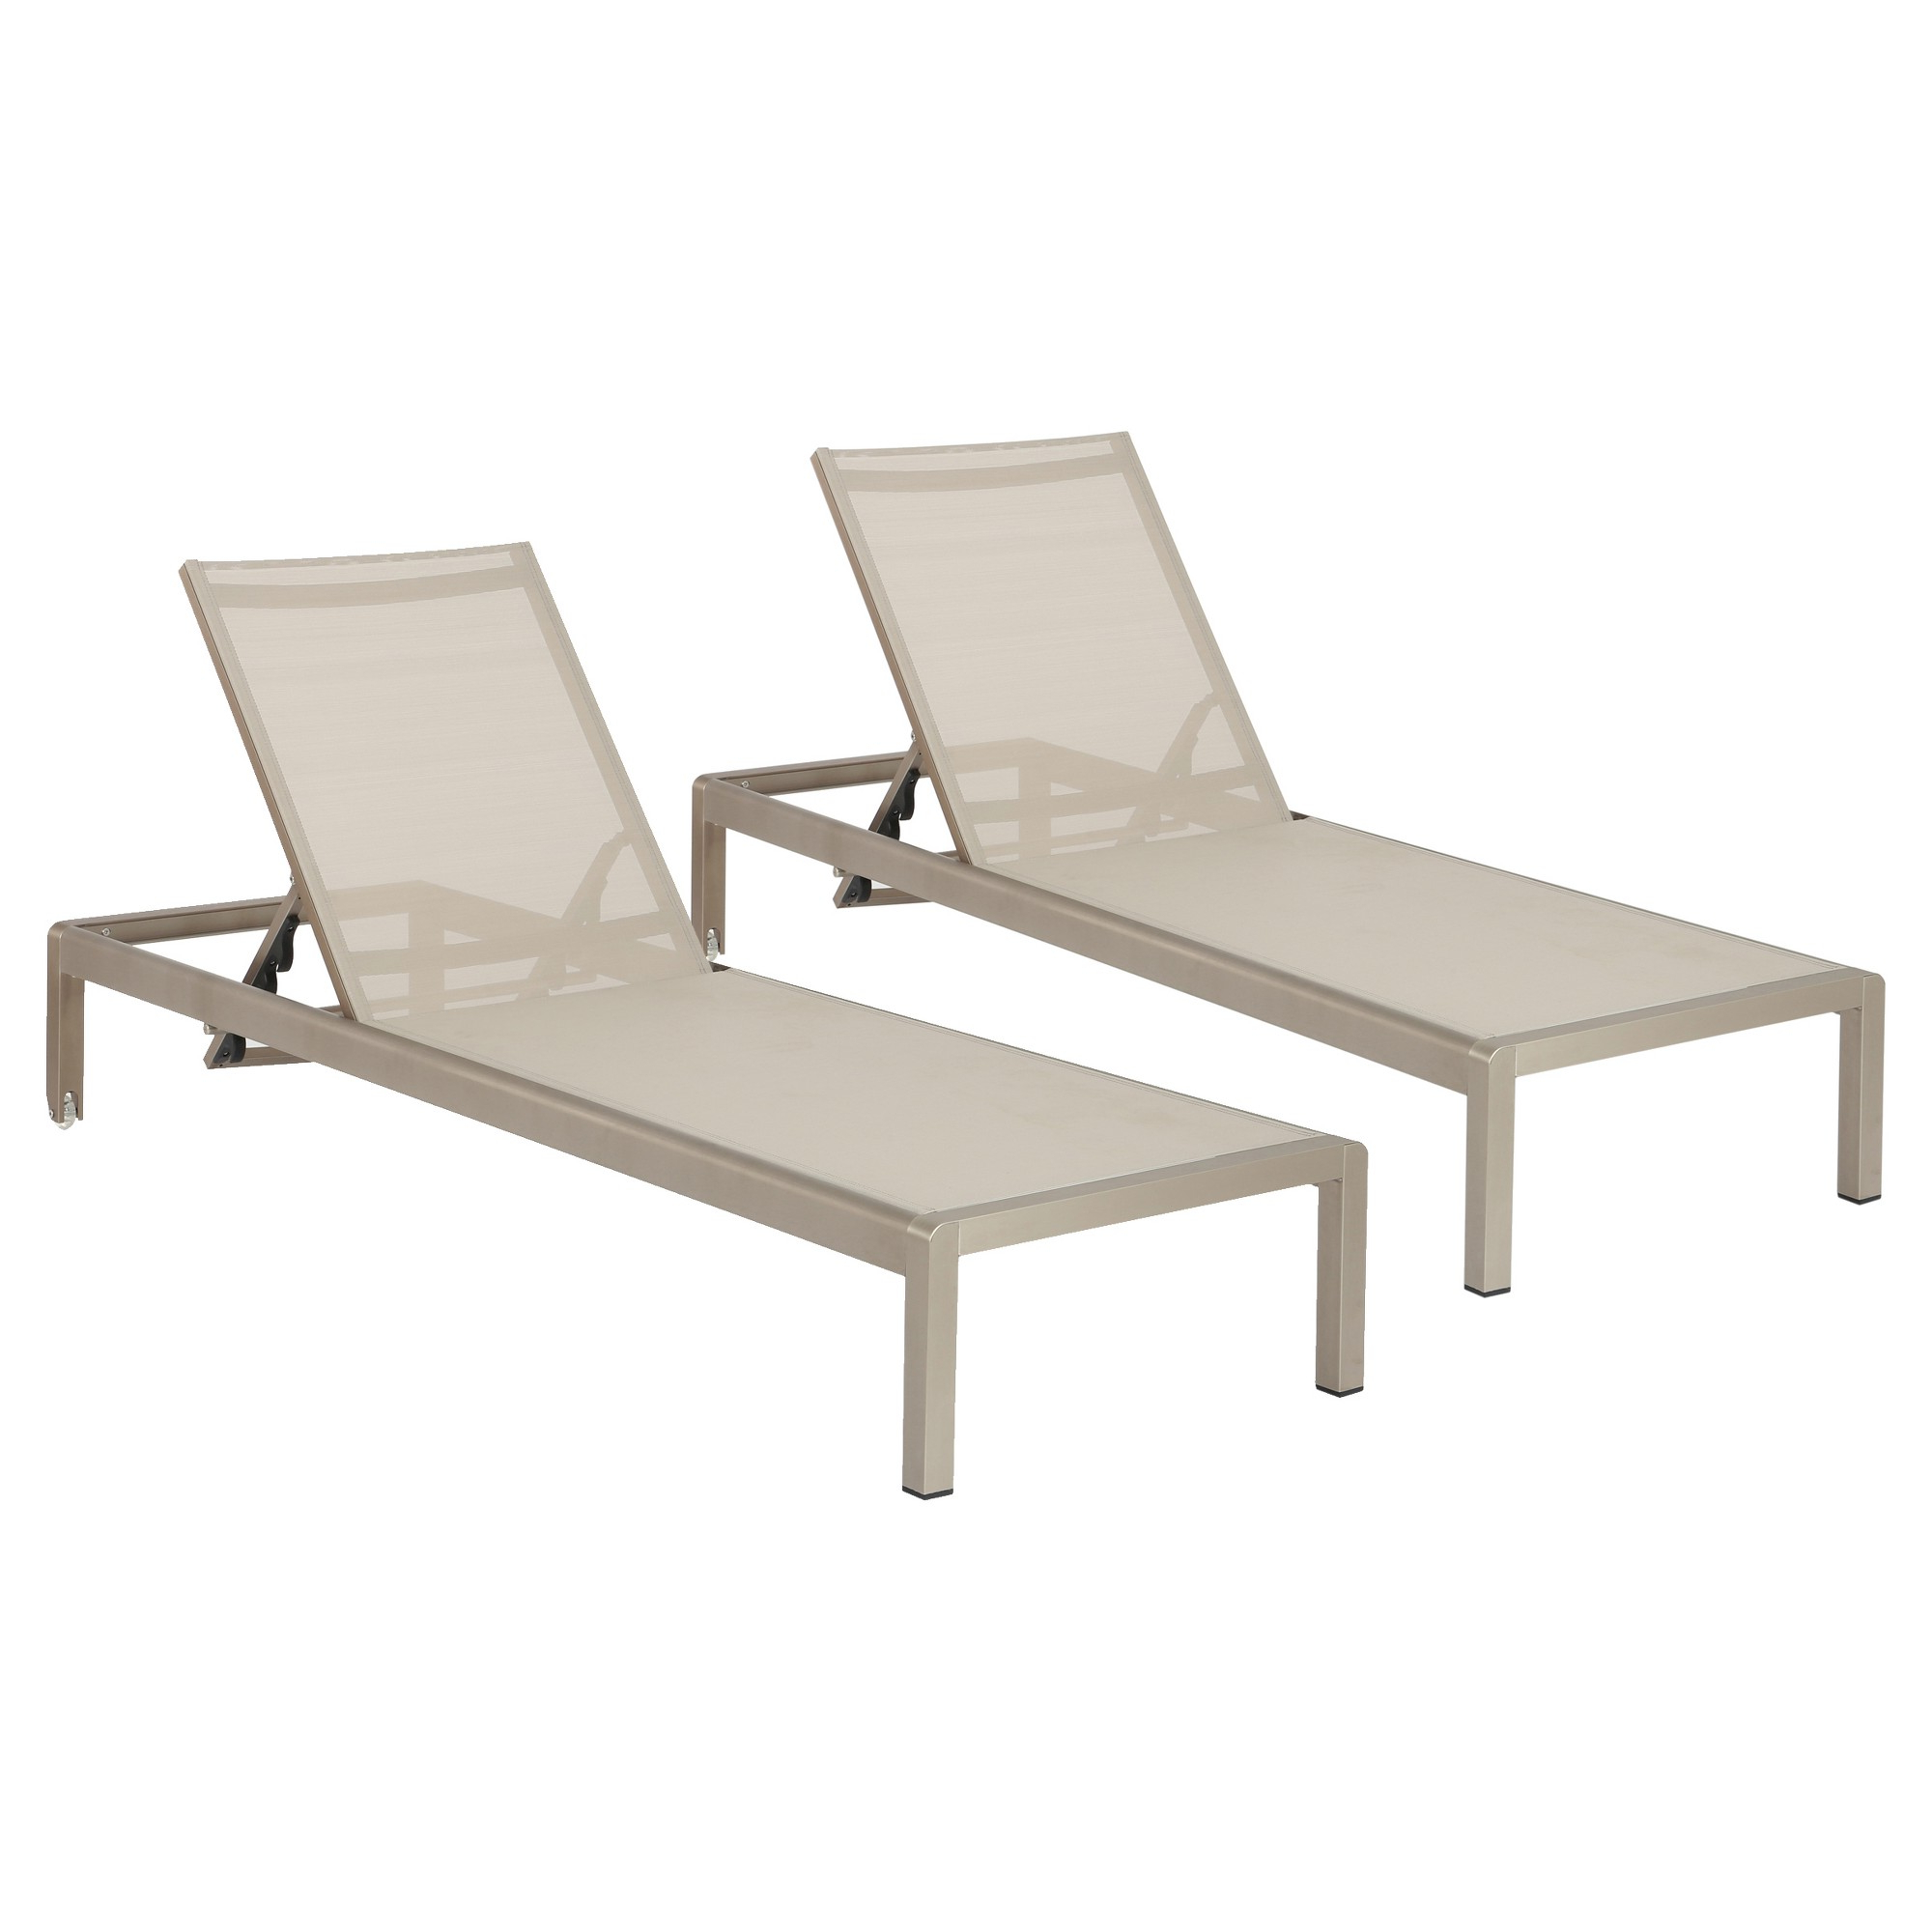 Cape Coral Outdoor Aluminum Chaise Lounges Throughout Best And Newest Cape Coral Set Of 2 Outdoor Mesh Chaise Lounges – Gray (View 15 of 25)